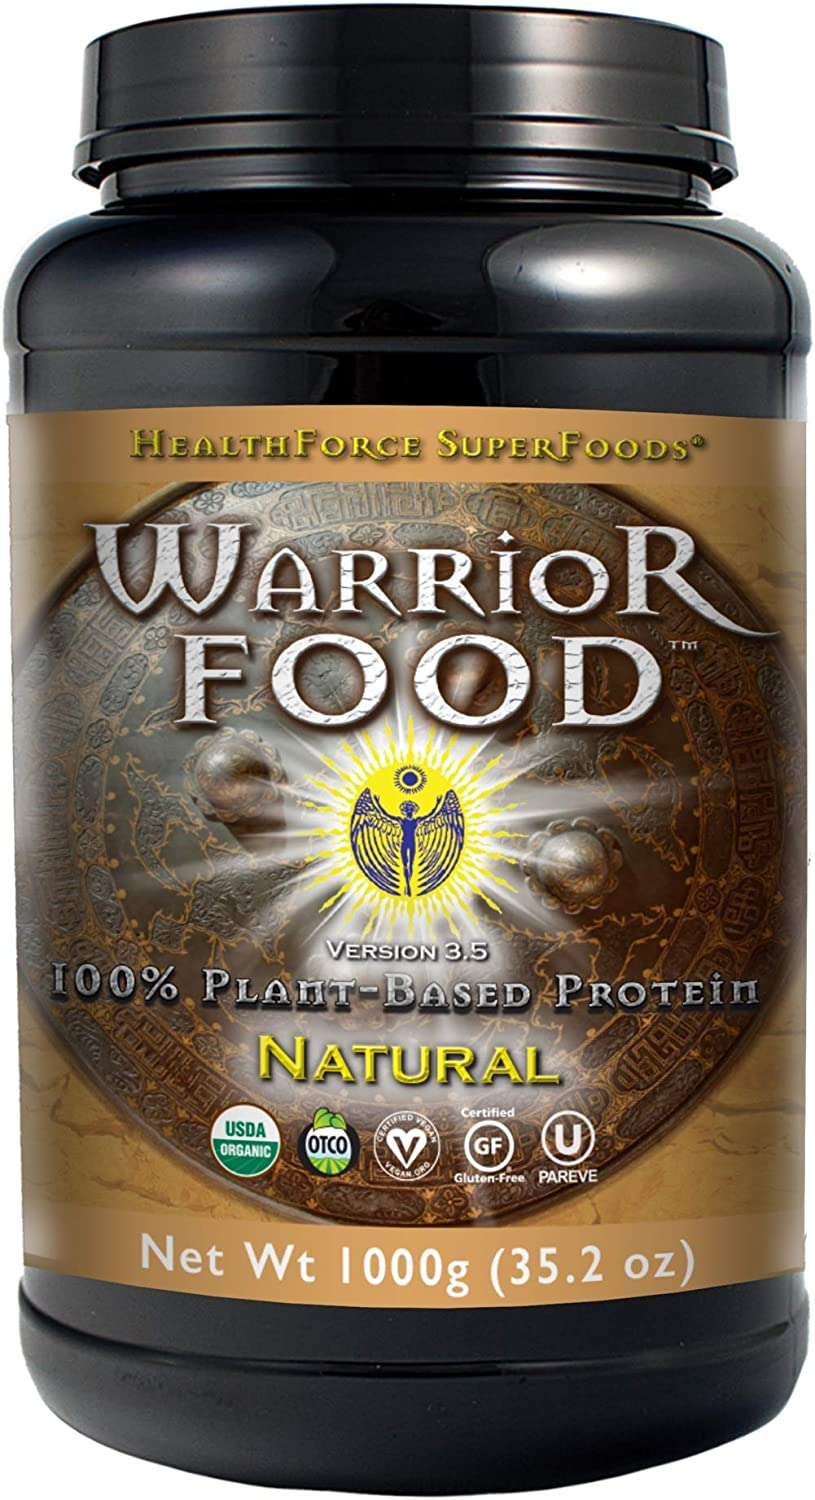 HealthForce SuperFoods Warrior Food - 1000 Grams, Natural Flavor - All Natural Plant Based Protein Powder, Easy to Digest - Organic, Non GMO, Vegan, Gluten Free - 50 Servings